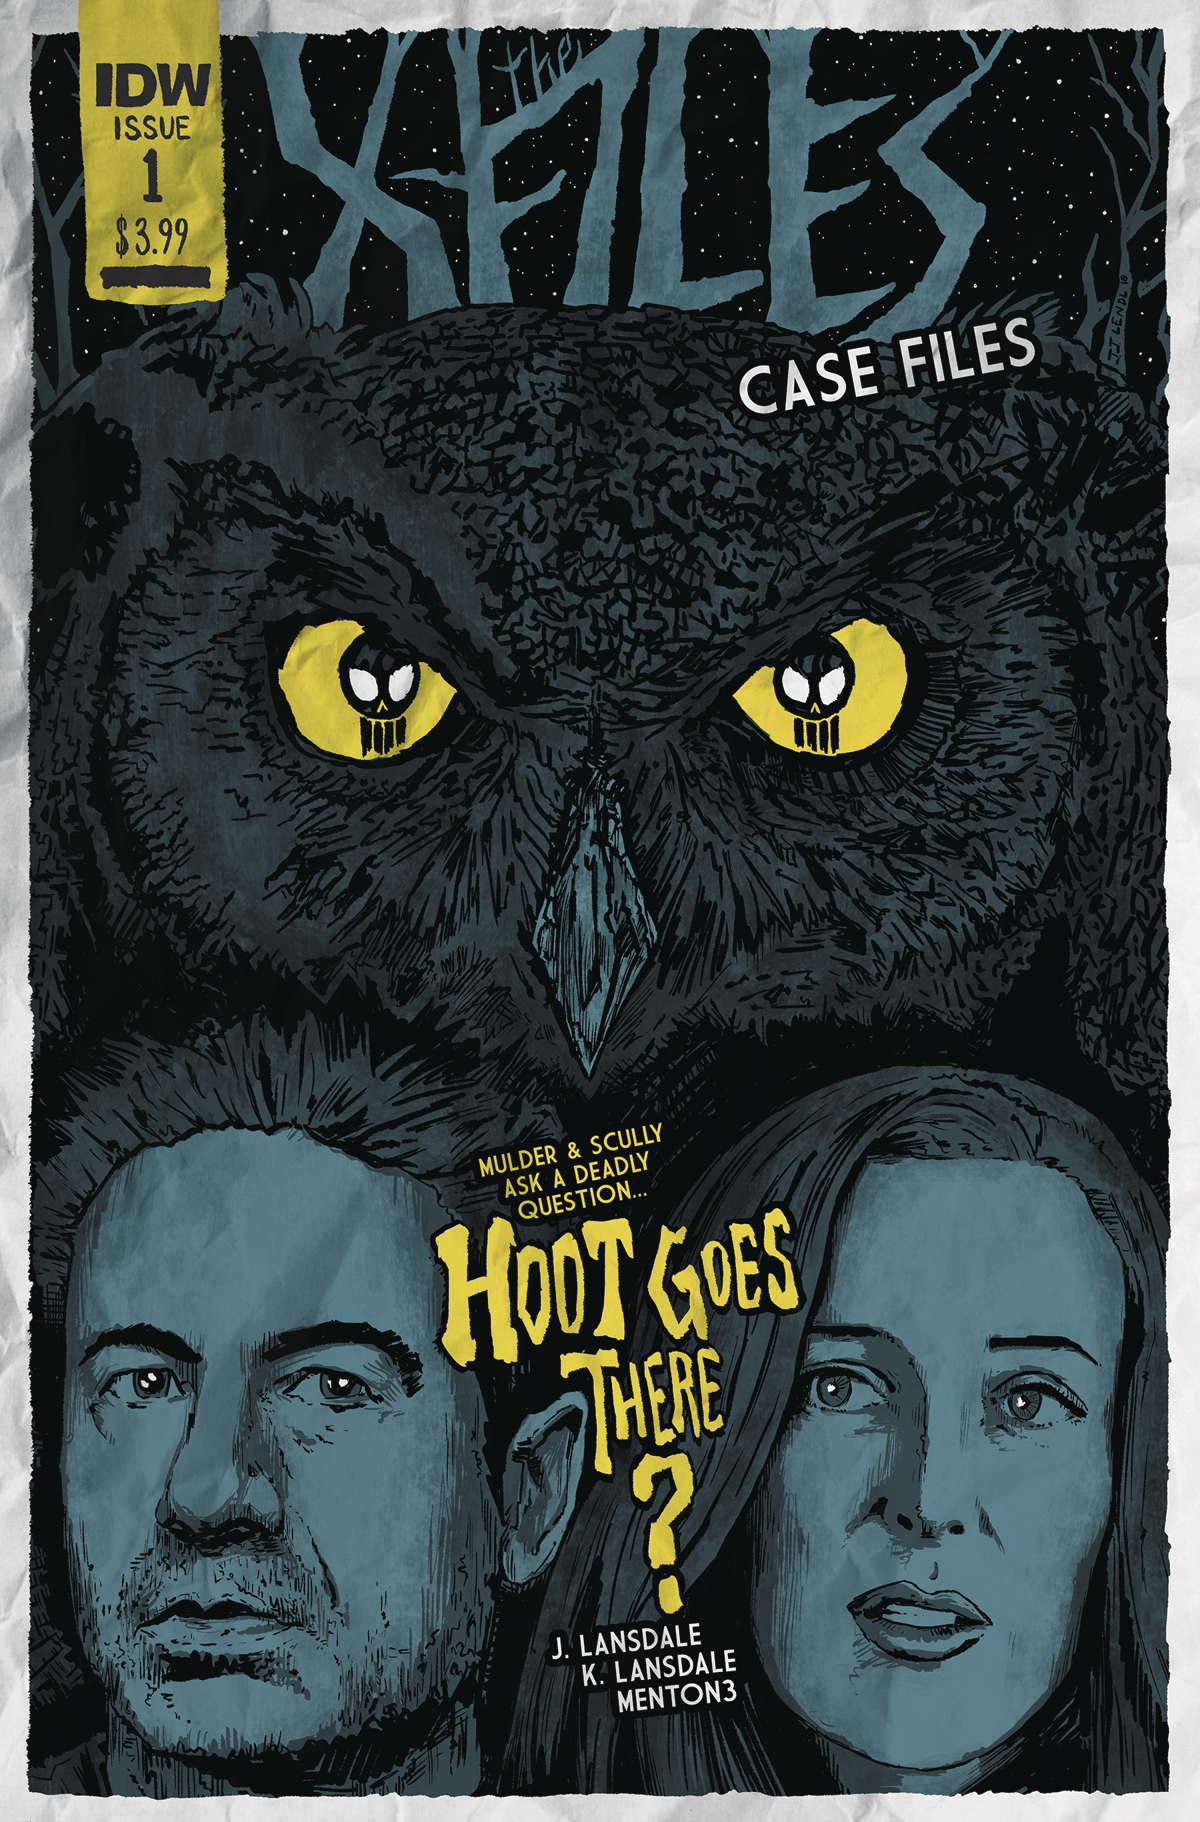 X-FILES CASE FILES HOOT GOES THERE #1 (OF 2) CVR B LENDL